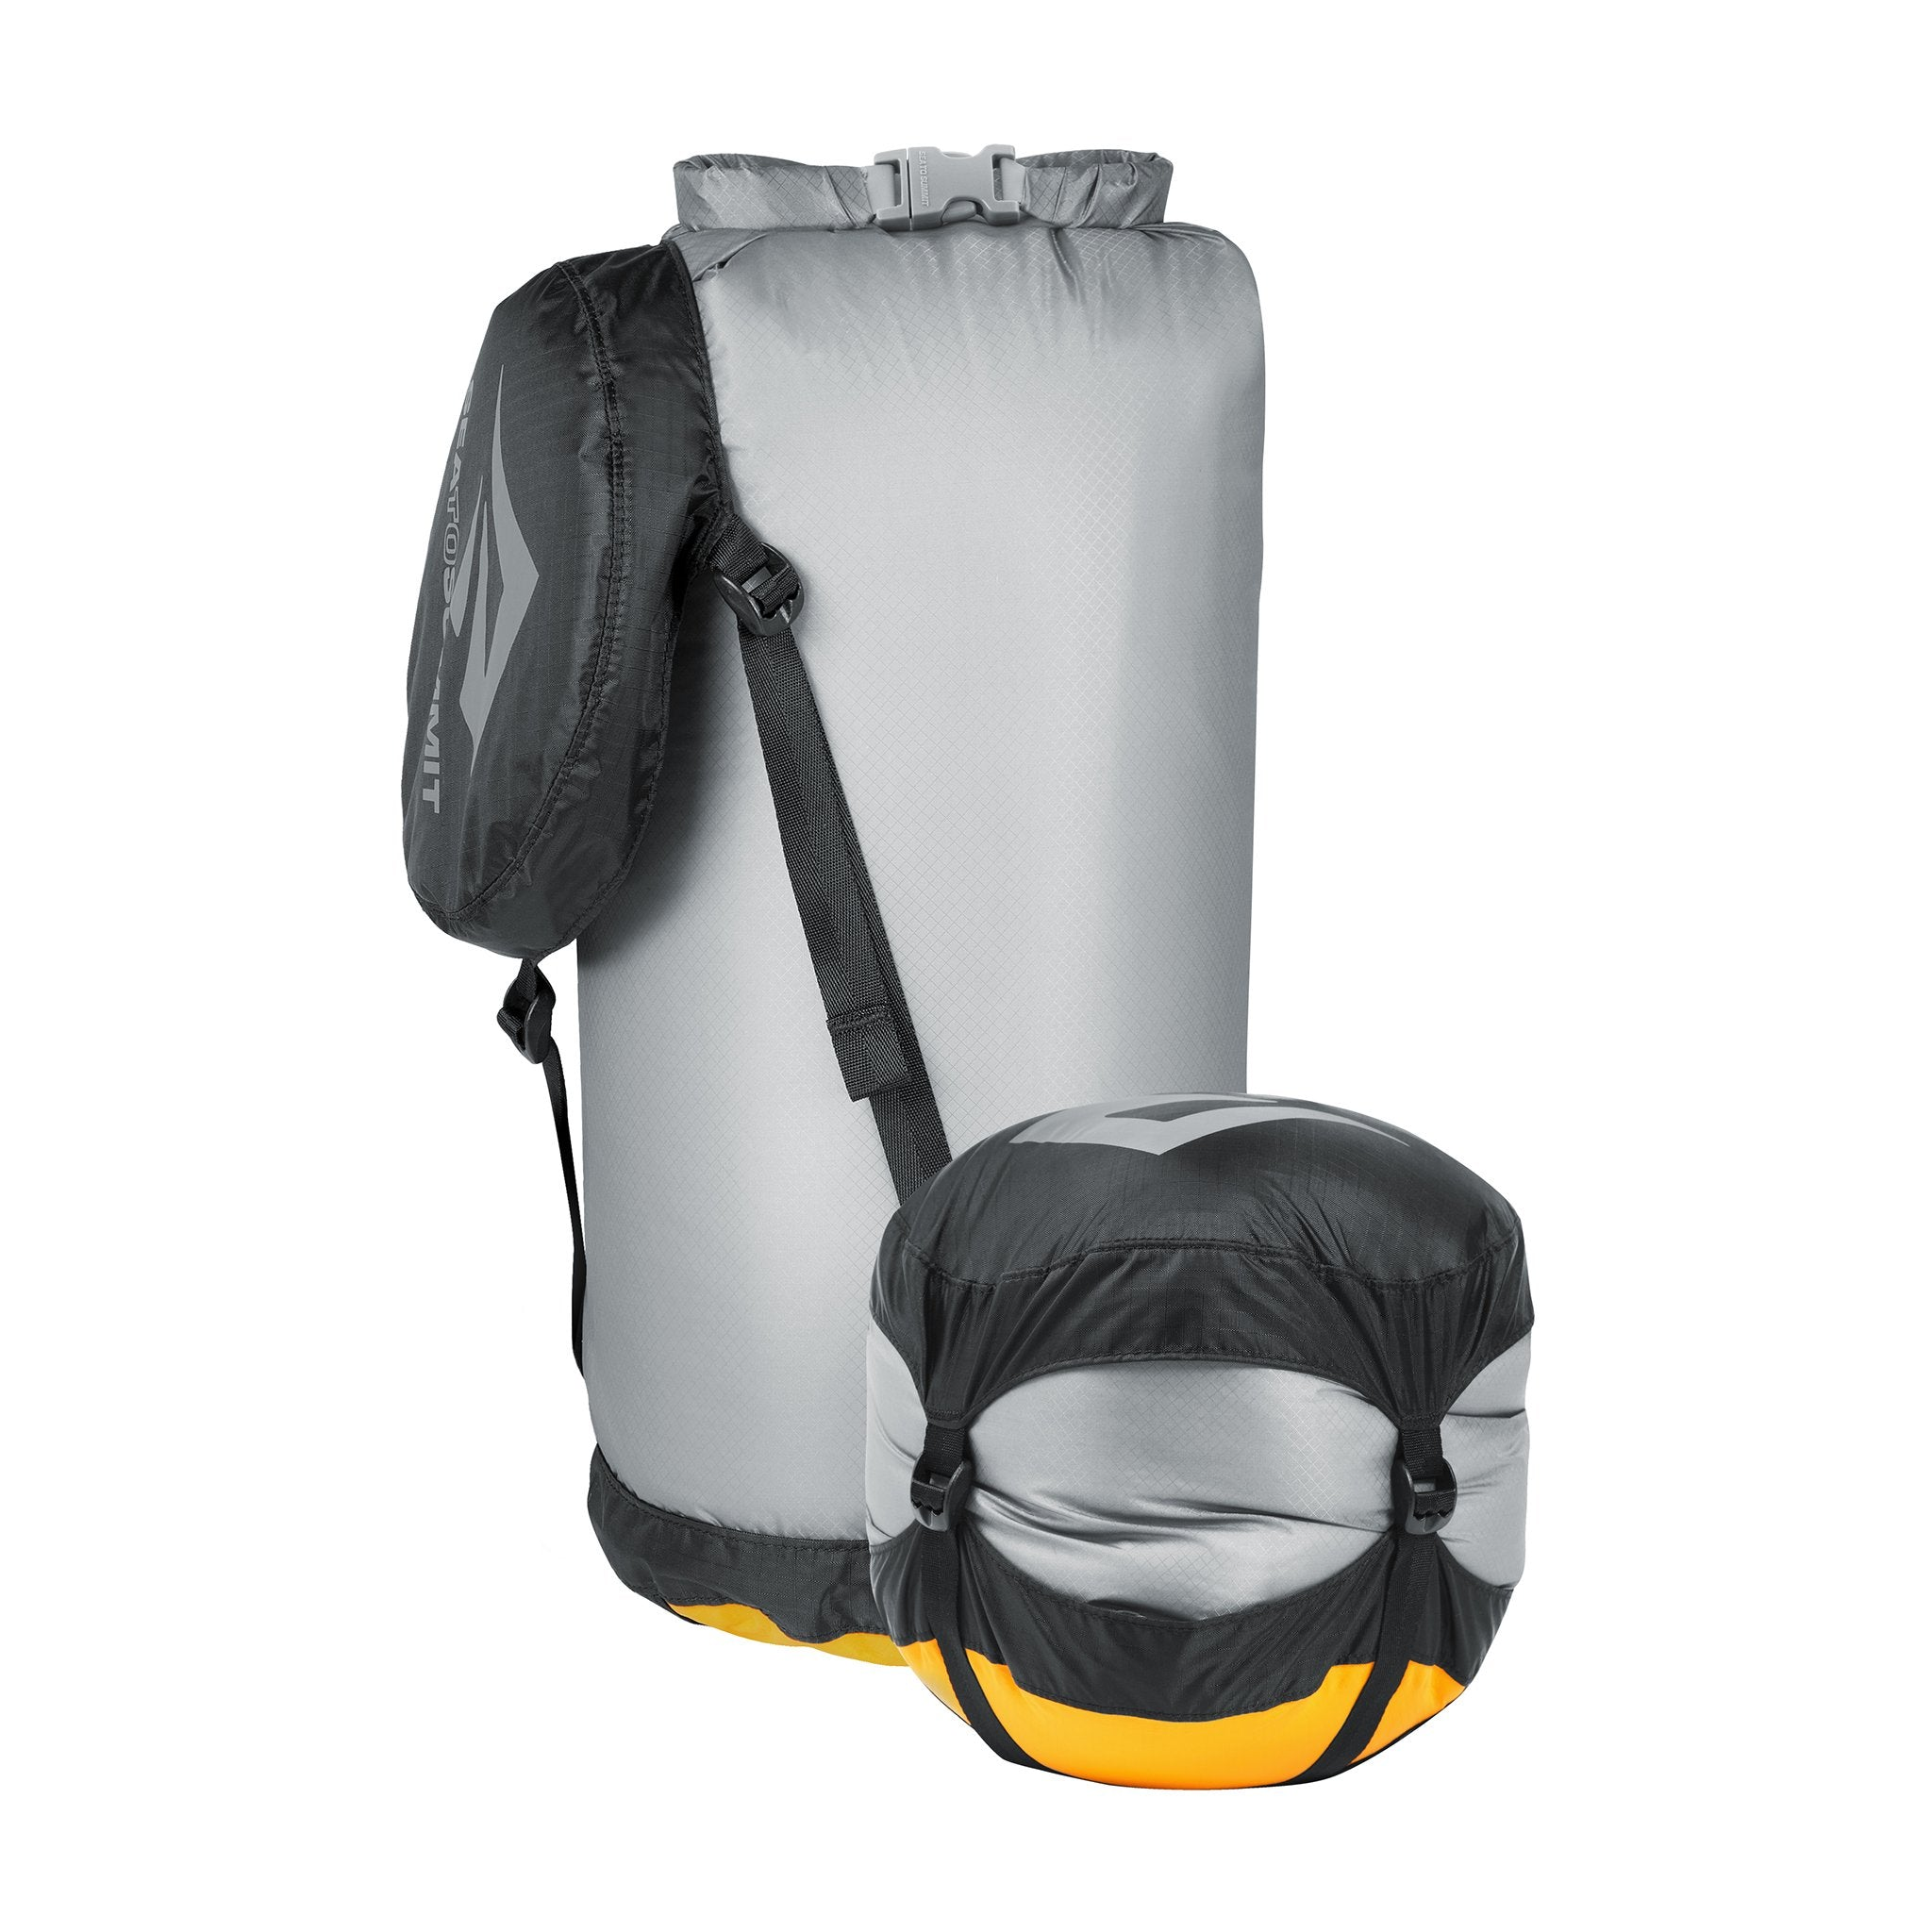 Ultra-Sil_eVent_Compression_Waterproof Dry Bag___10_Liter